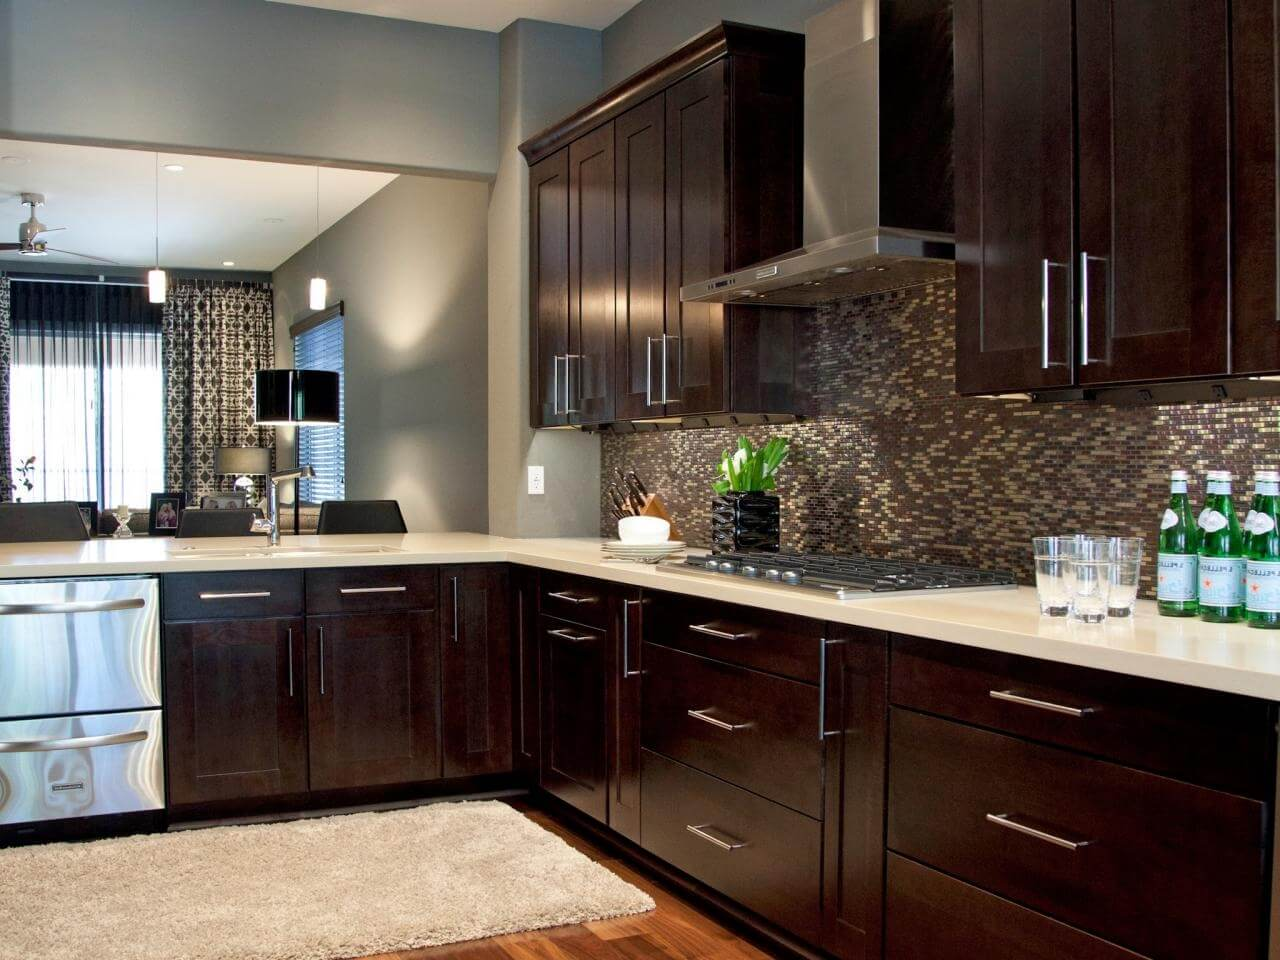 rta kitchen cabinets why you should use them in your kitchen